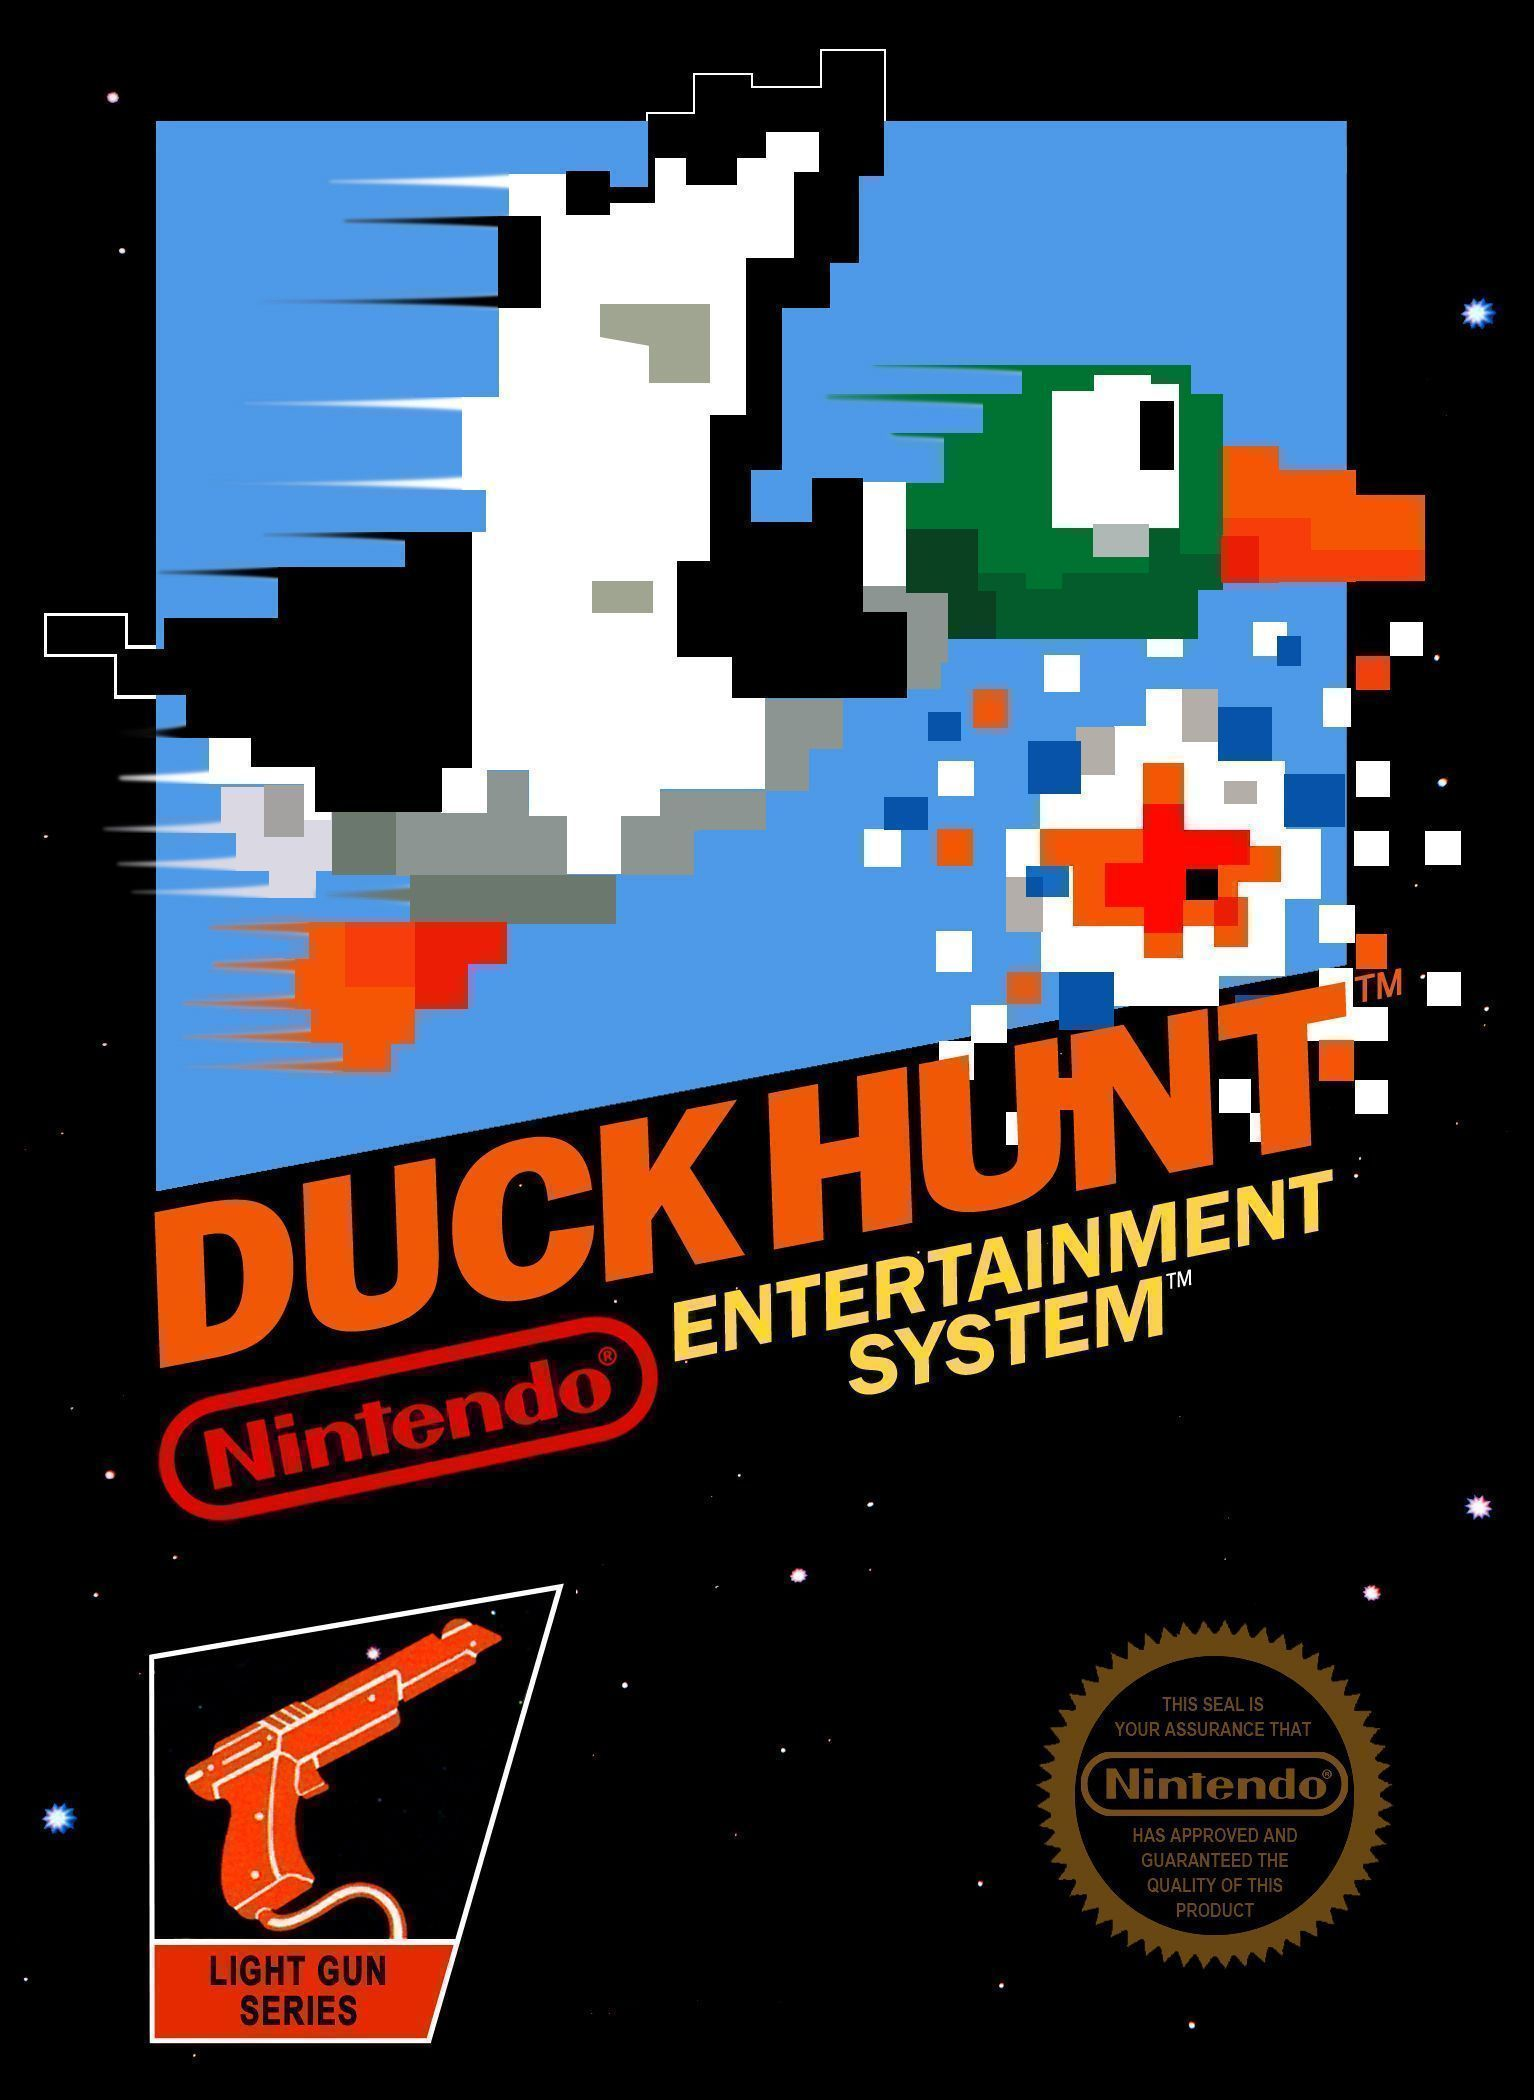 ZZZ_UNK_Duck Hunt (Bad CHR 6147b621)